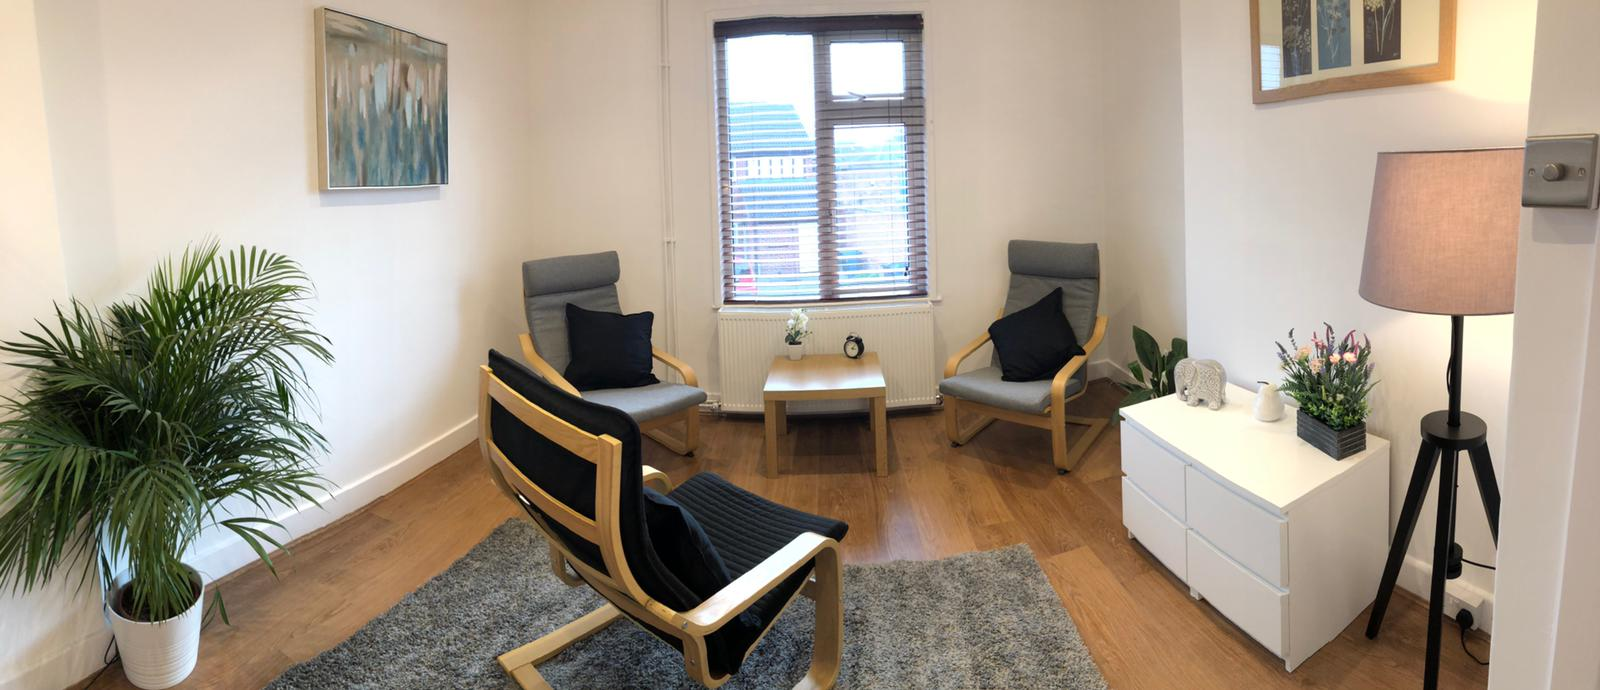 Trent Therapy Room